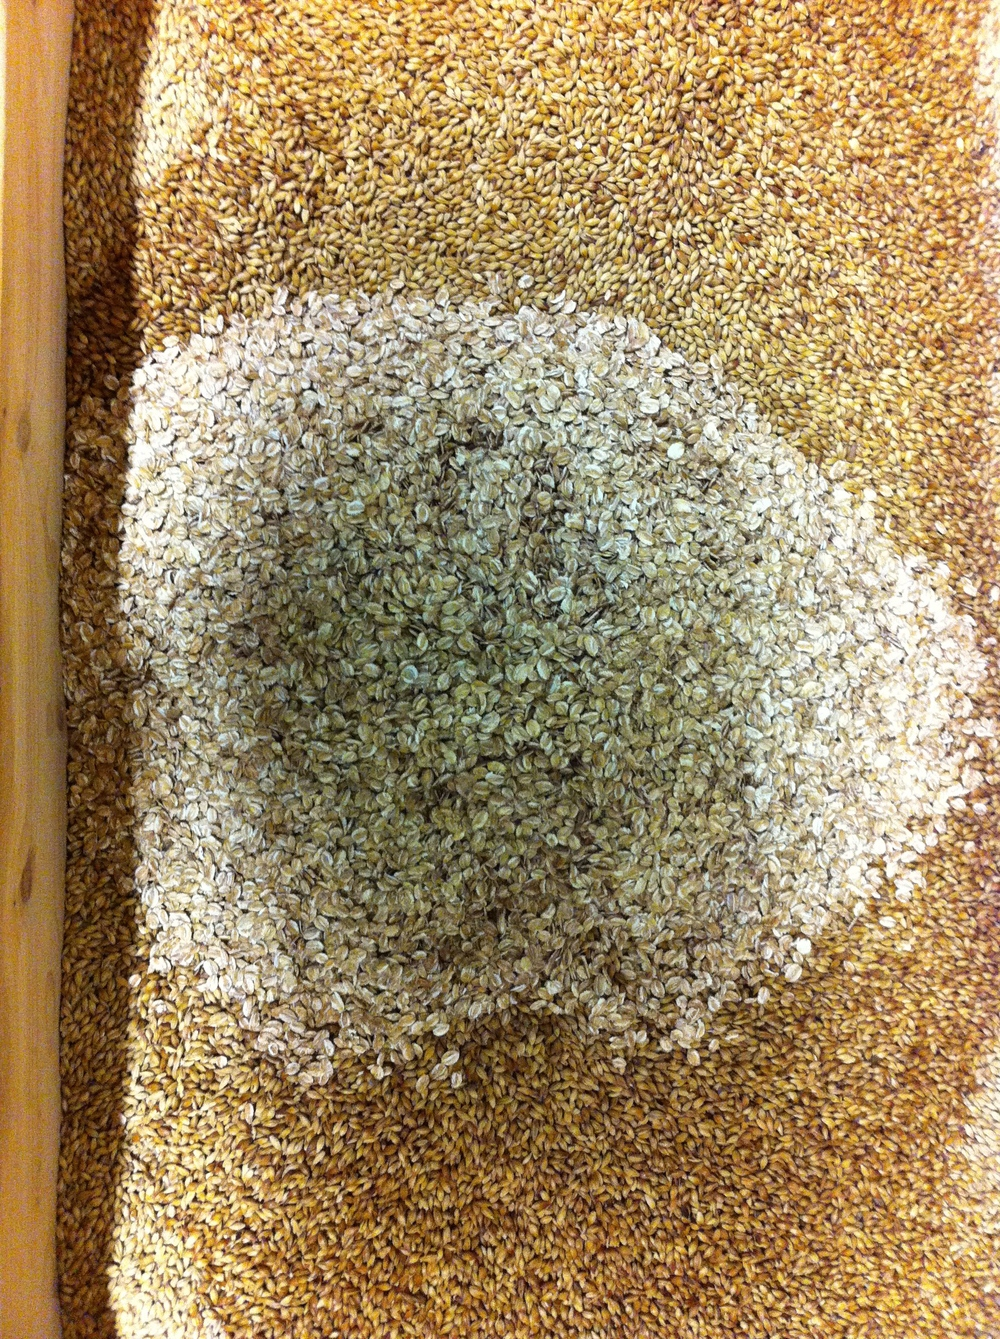 Docs Pale Ale grain!  Oats in the middle and barley sneaking in on the side.